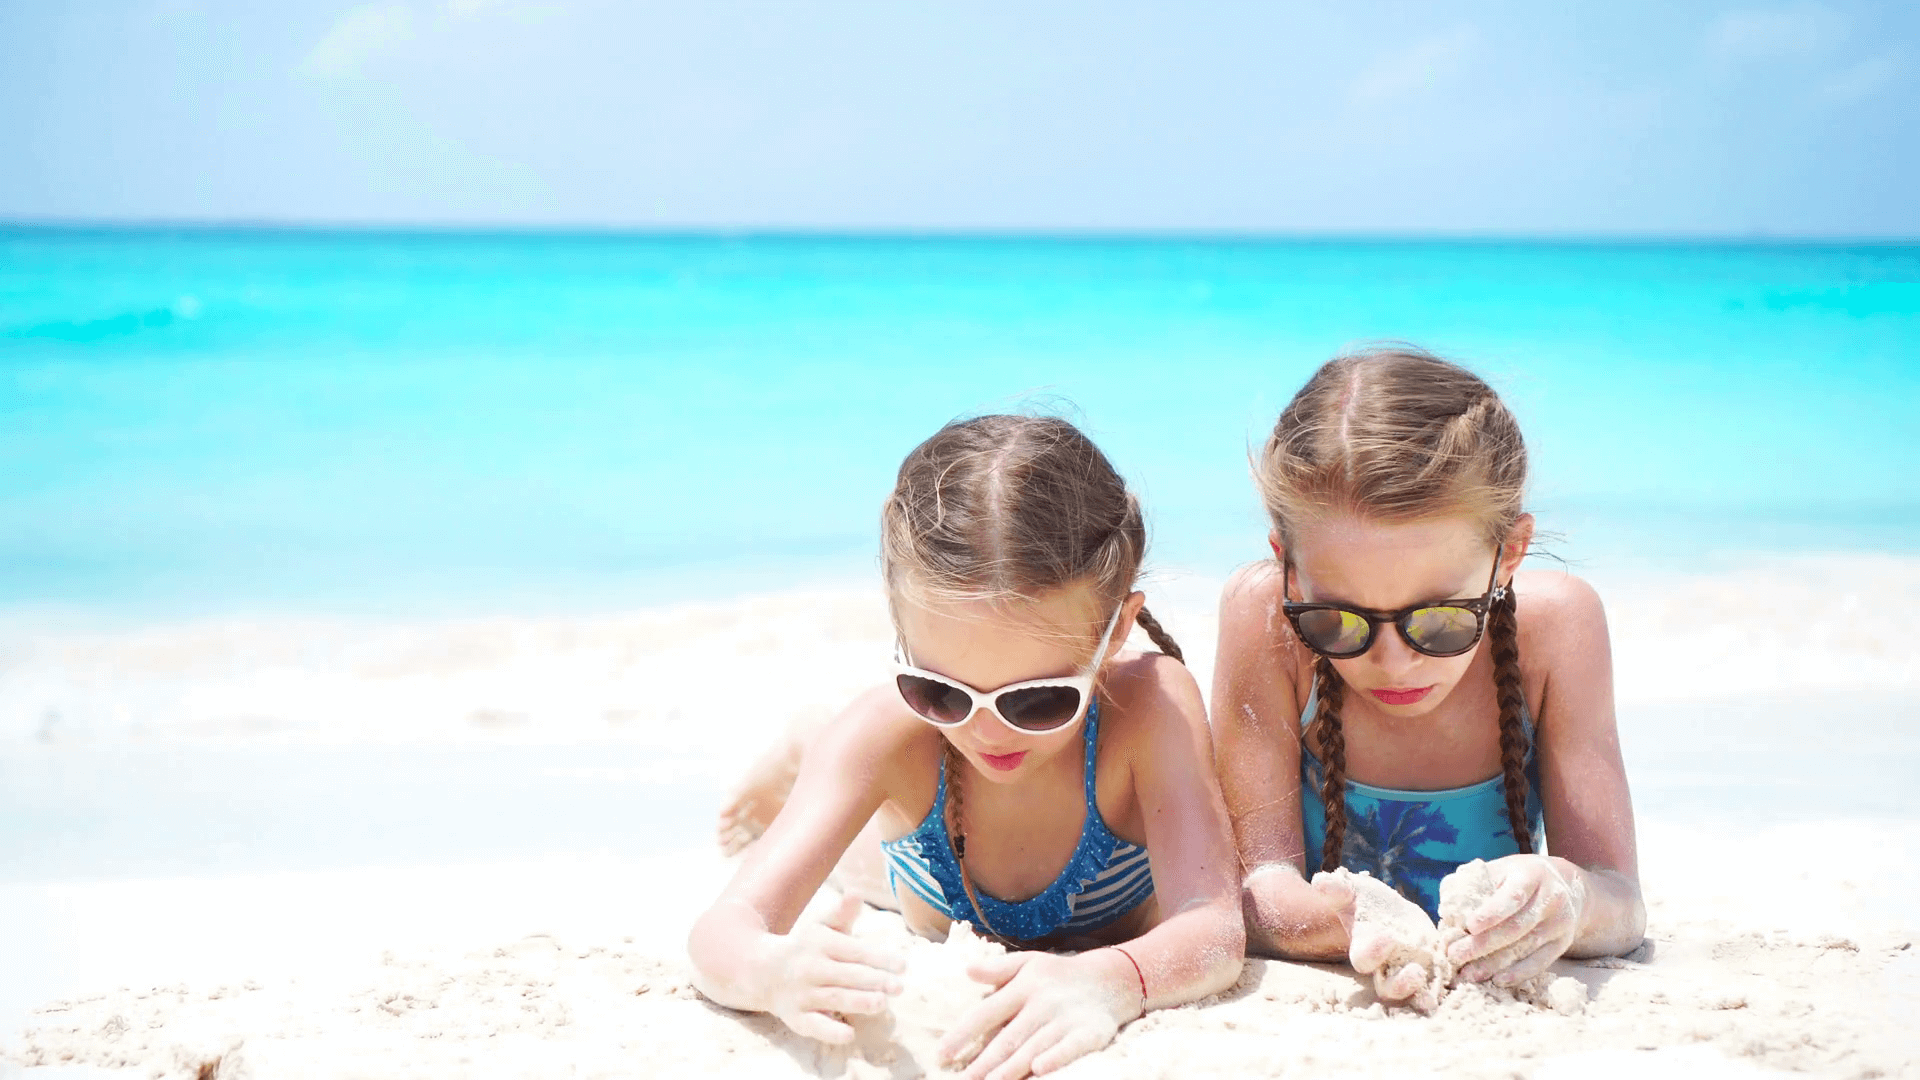 videoblocks-adorable-little-kids-play-with-sand-on-the-white-beach-two-girls-have-fun-on-summer-holidays_haxxsjqyjz_thumbnail-full01